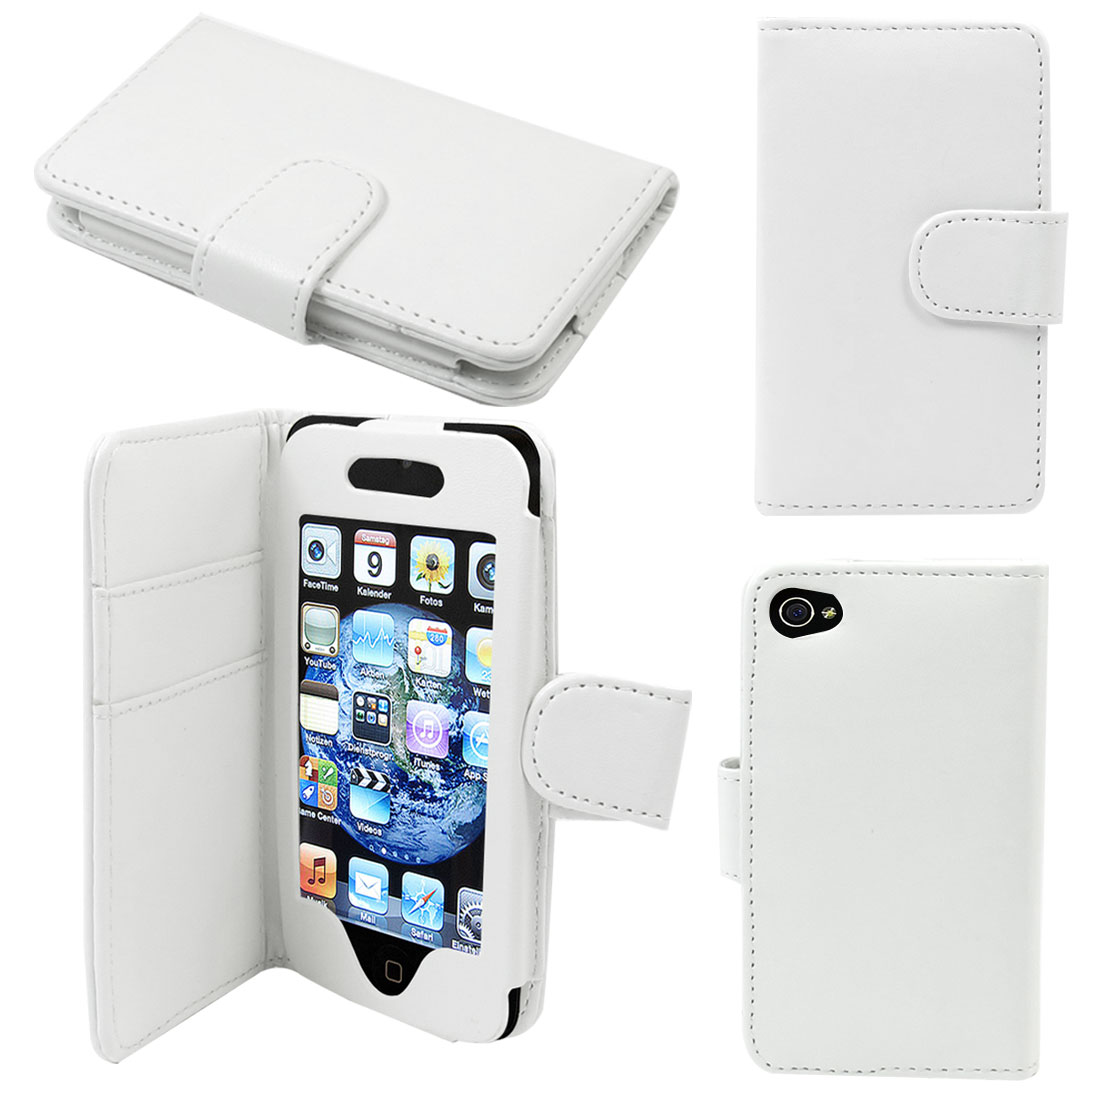 Stitched Faux Leather Magetic Flip Case Cover for iPod Touch 4G White